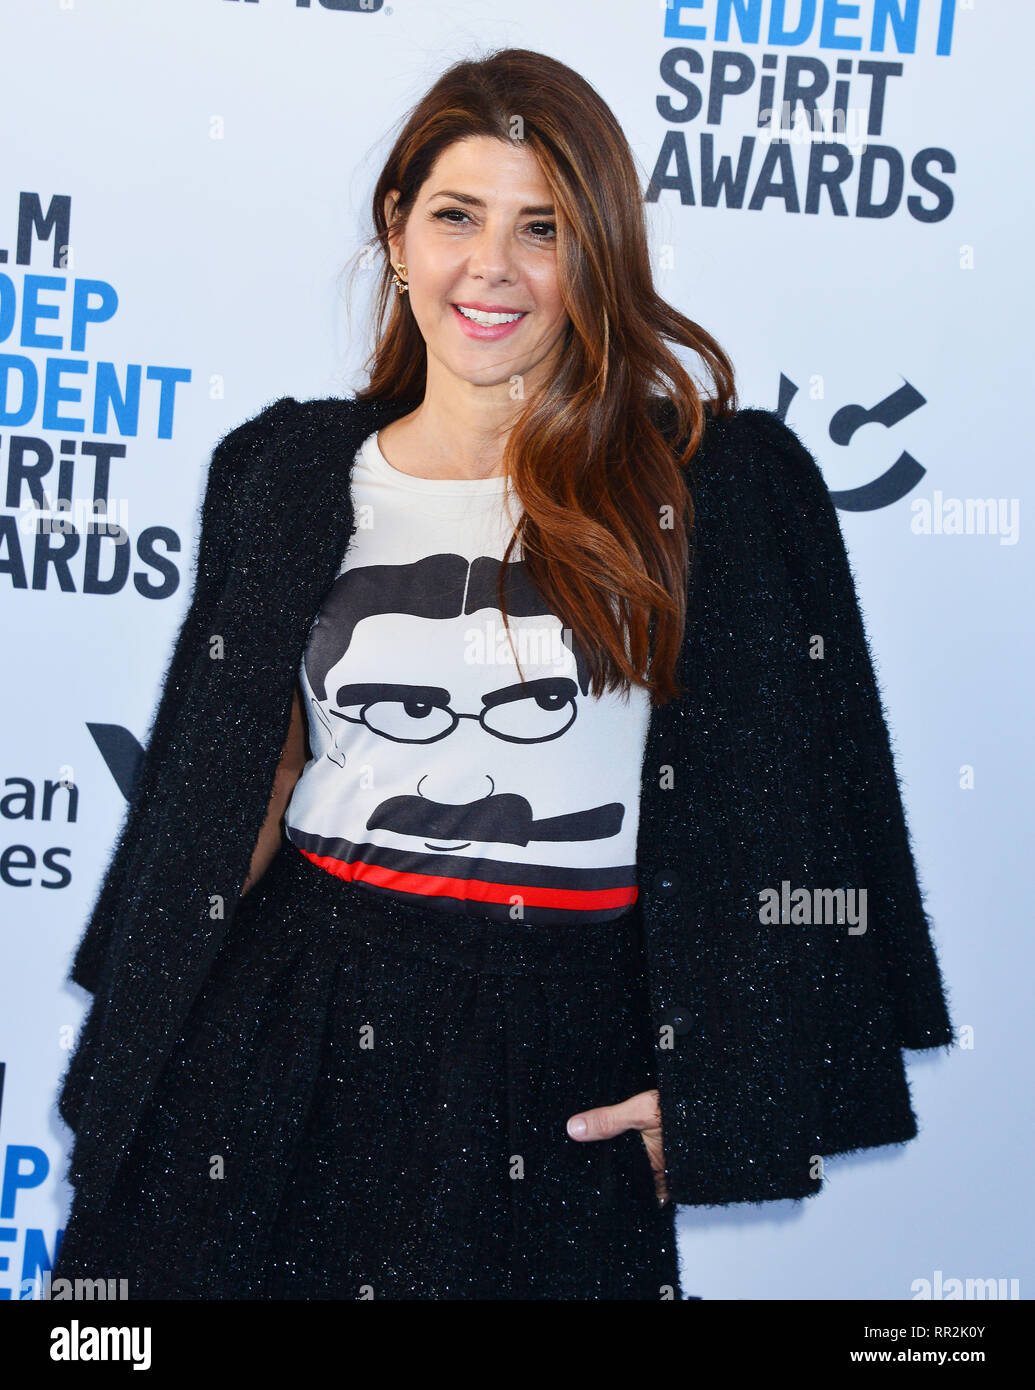 Santa Monica, California, USA. 23rd Feb, 2019. Marisa Tomei 116 attends the 2019 Film Independent Spirit Awards on February 23, 2019 in Santa Monica, California. Credit: Tsuni / USA/Alamy Live News - Stock Image